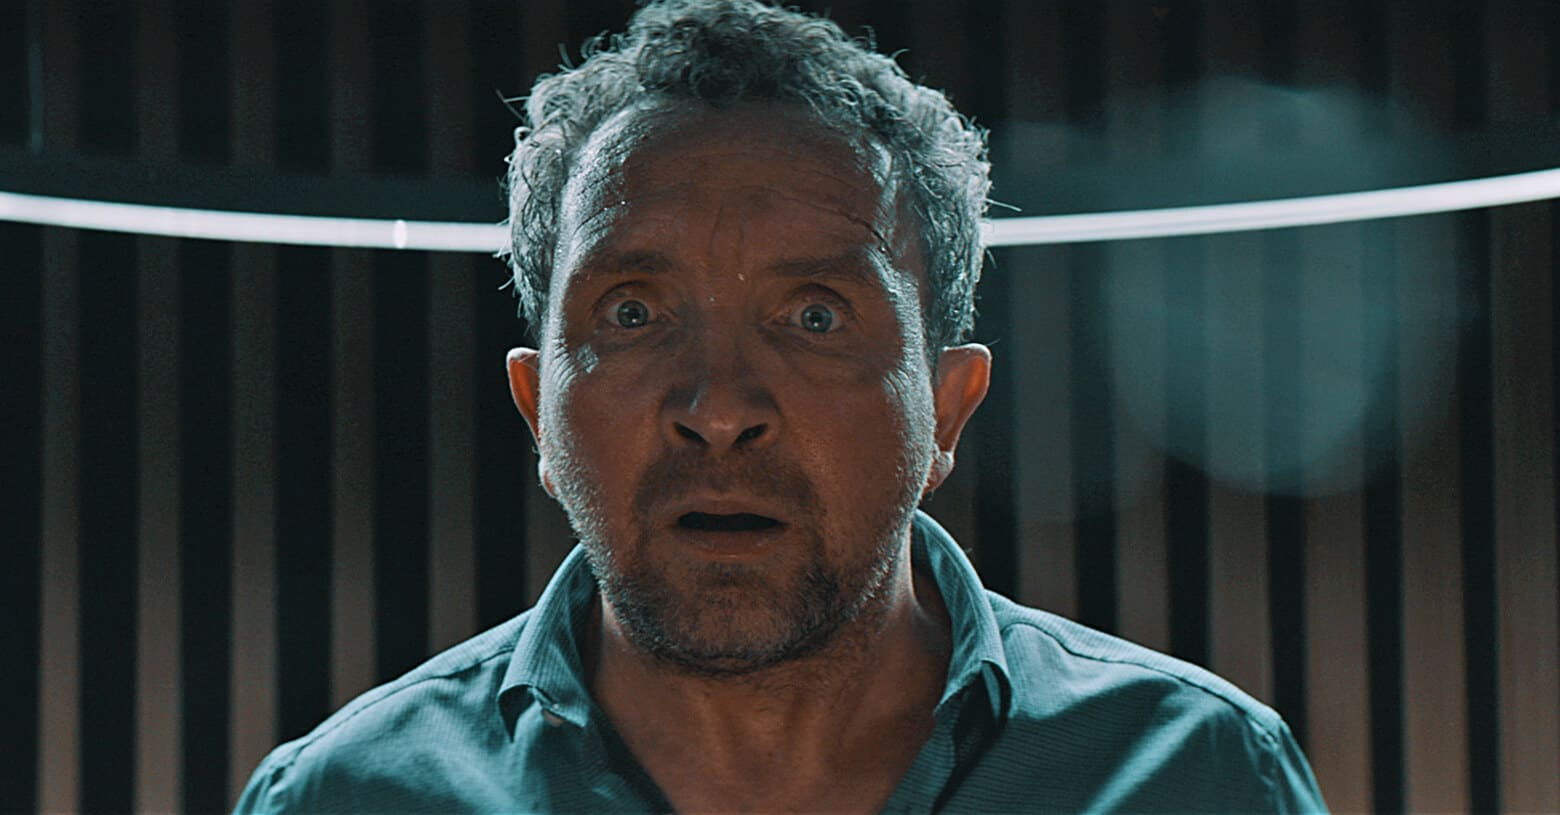 eddie marsan feedback still 1 - FrightFest 2019: FEEDBACK Review - Eddie Marsan Delivers A Career-Defining Performance